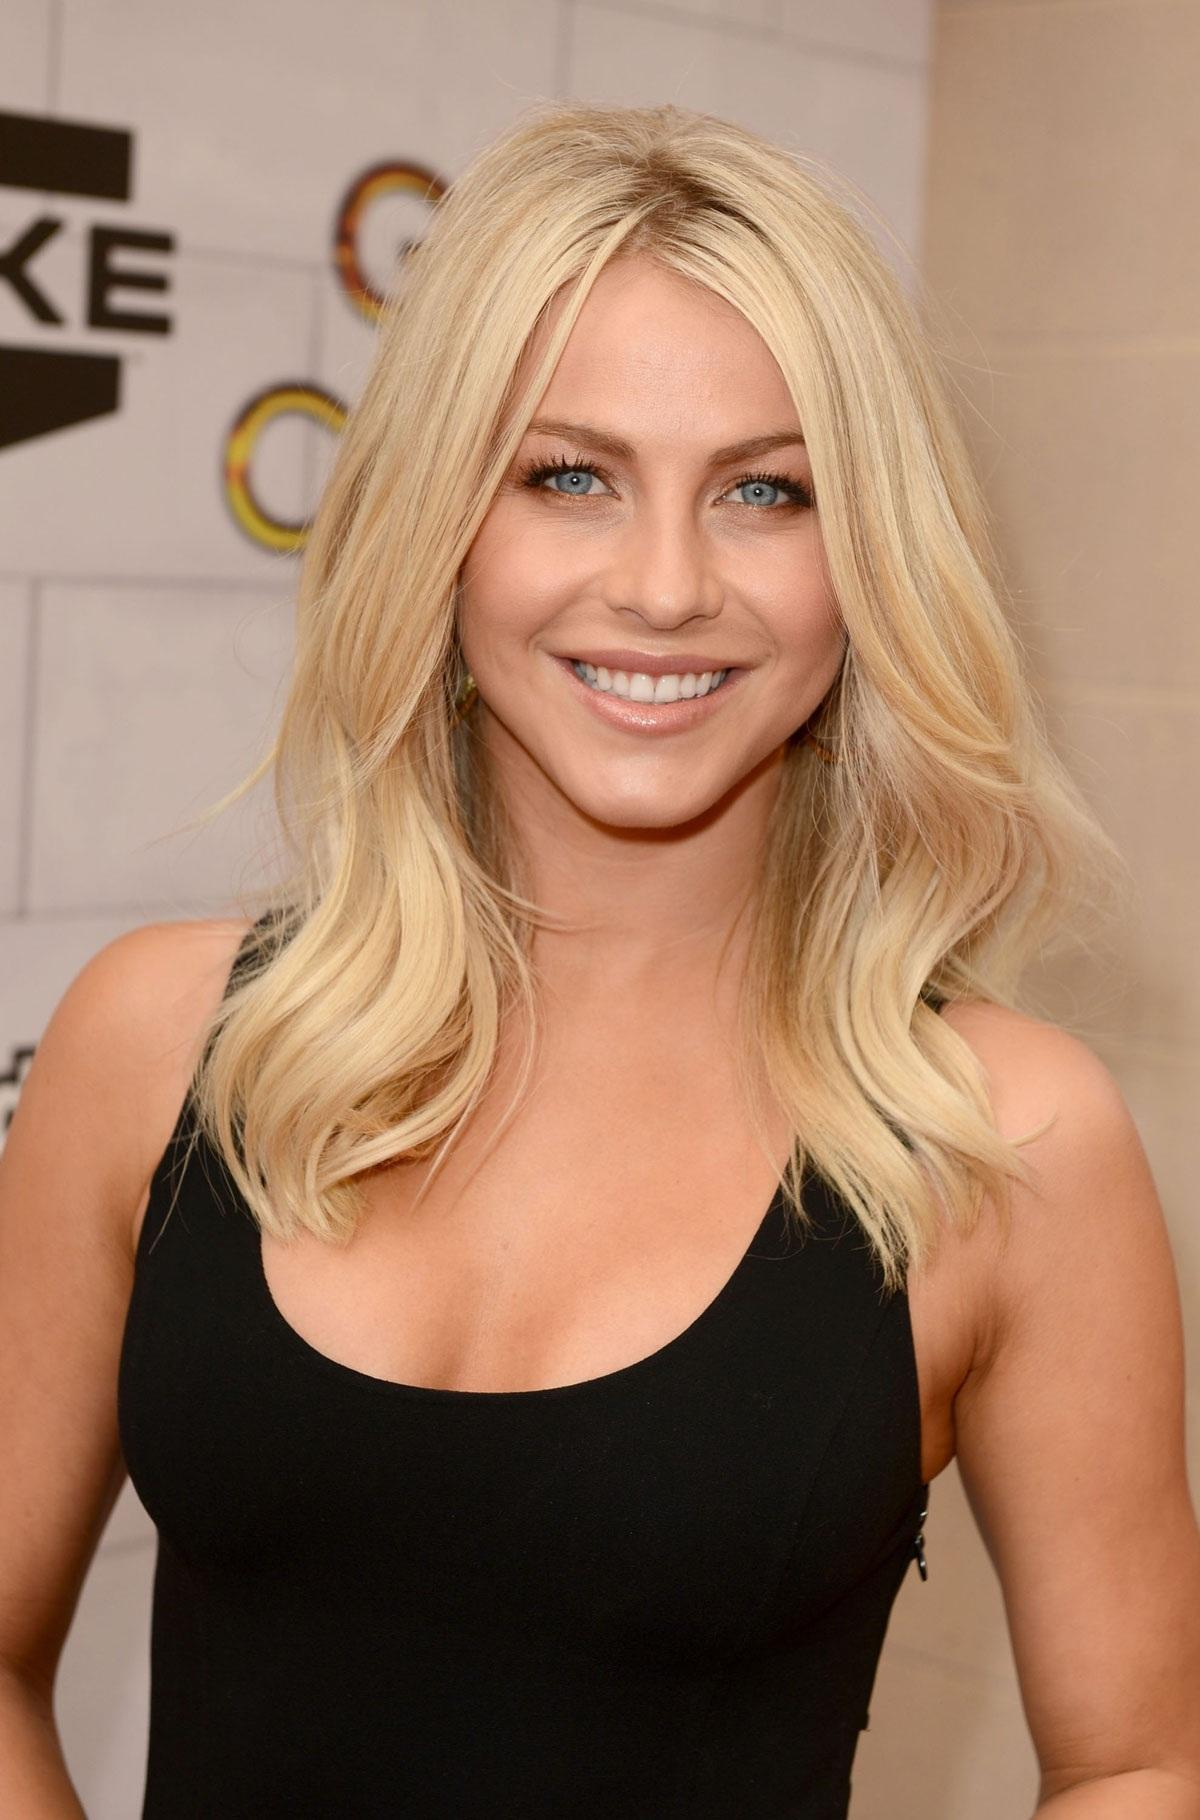 Julianne Hough High Quality Wallpapers For Iphone